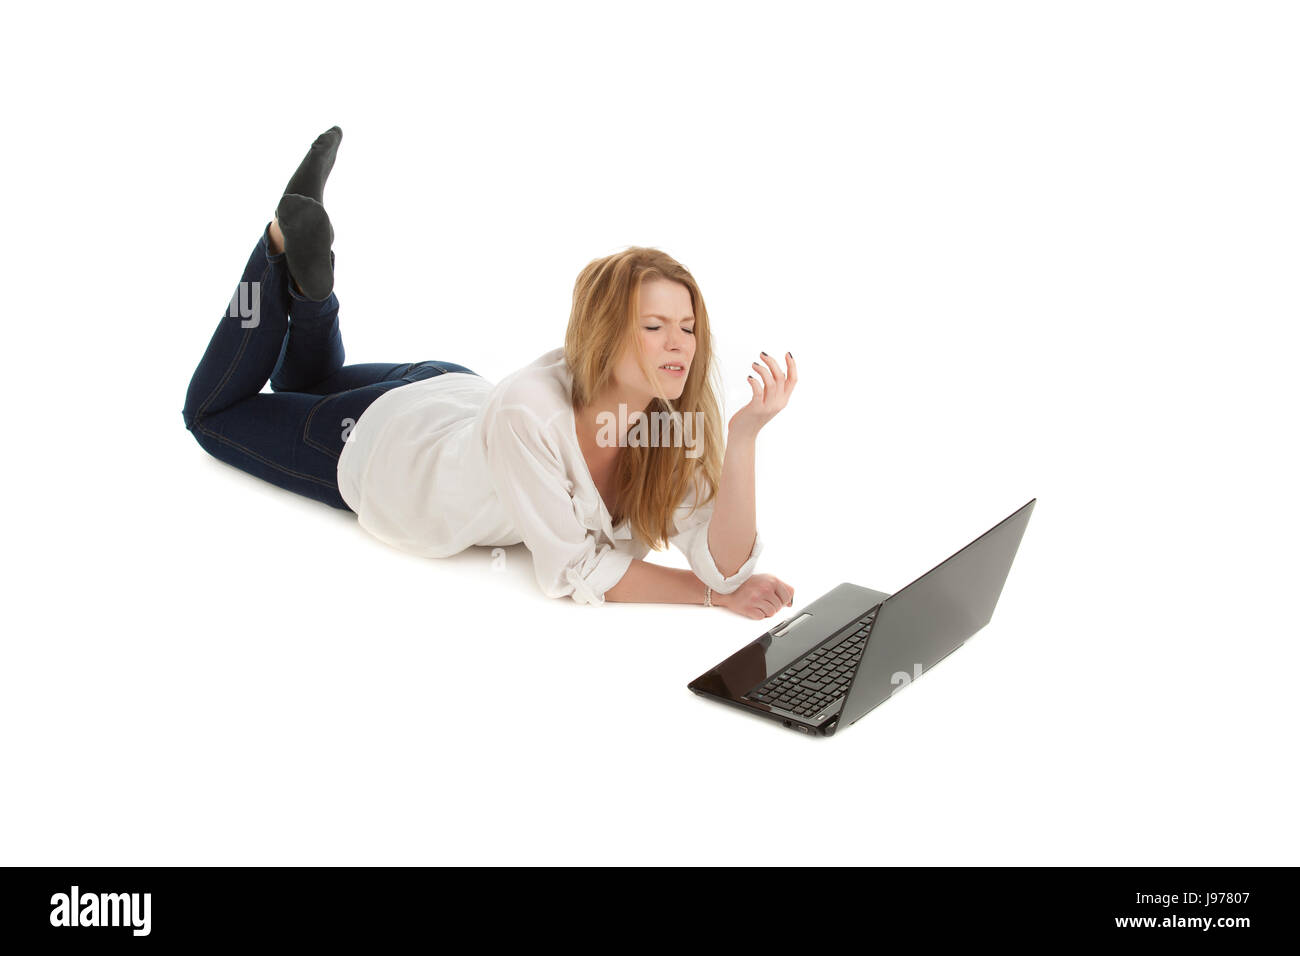 young blonde woman lying down with computer - Stock Image